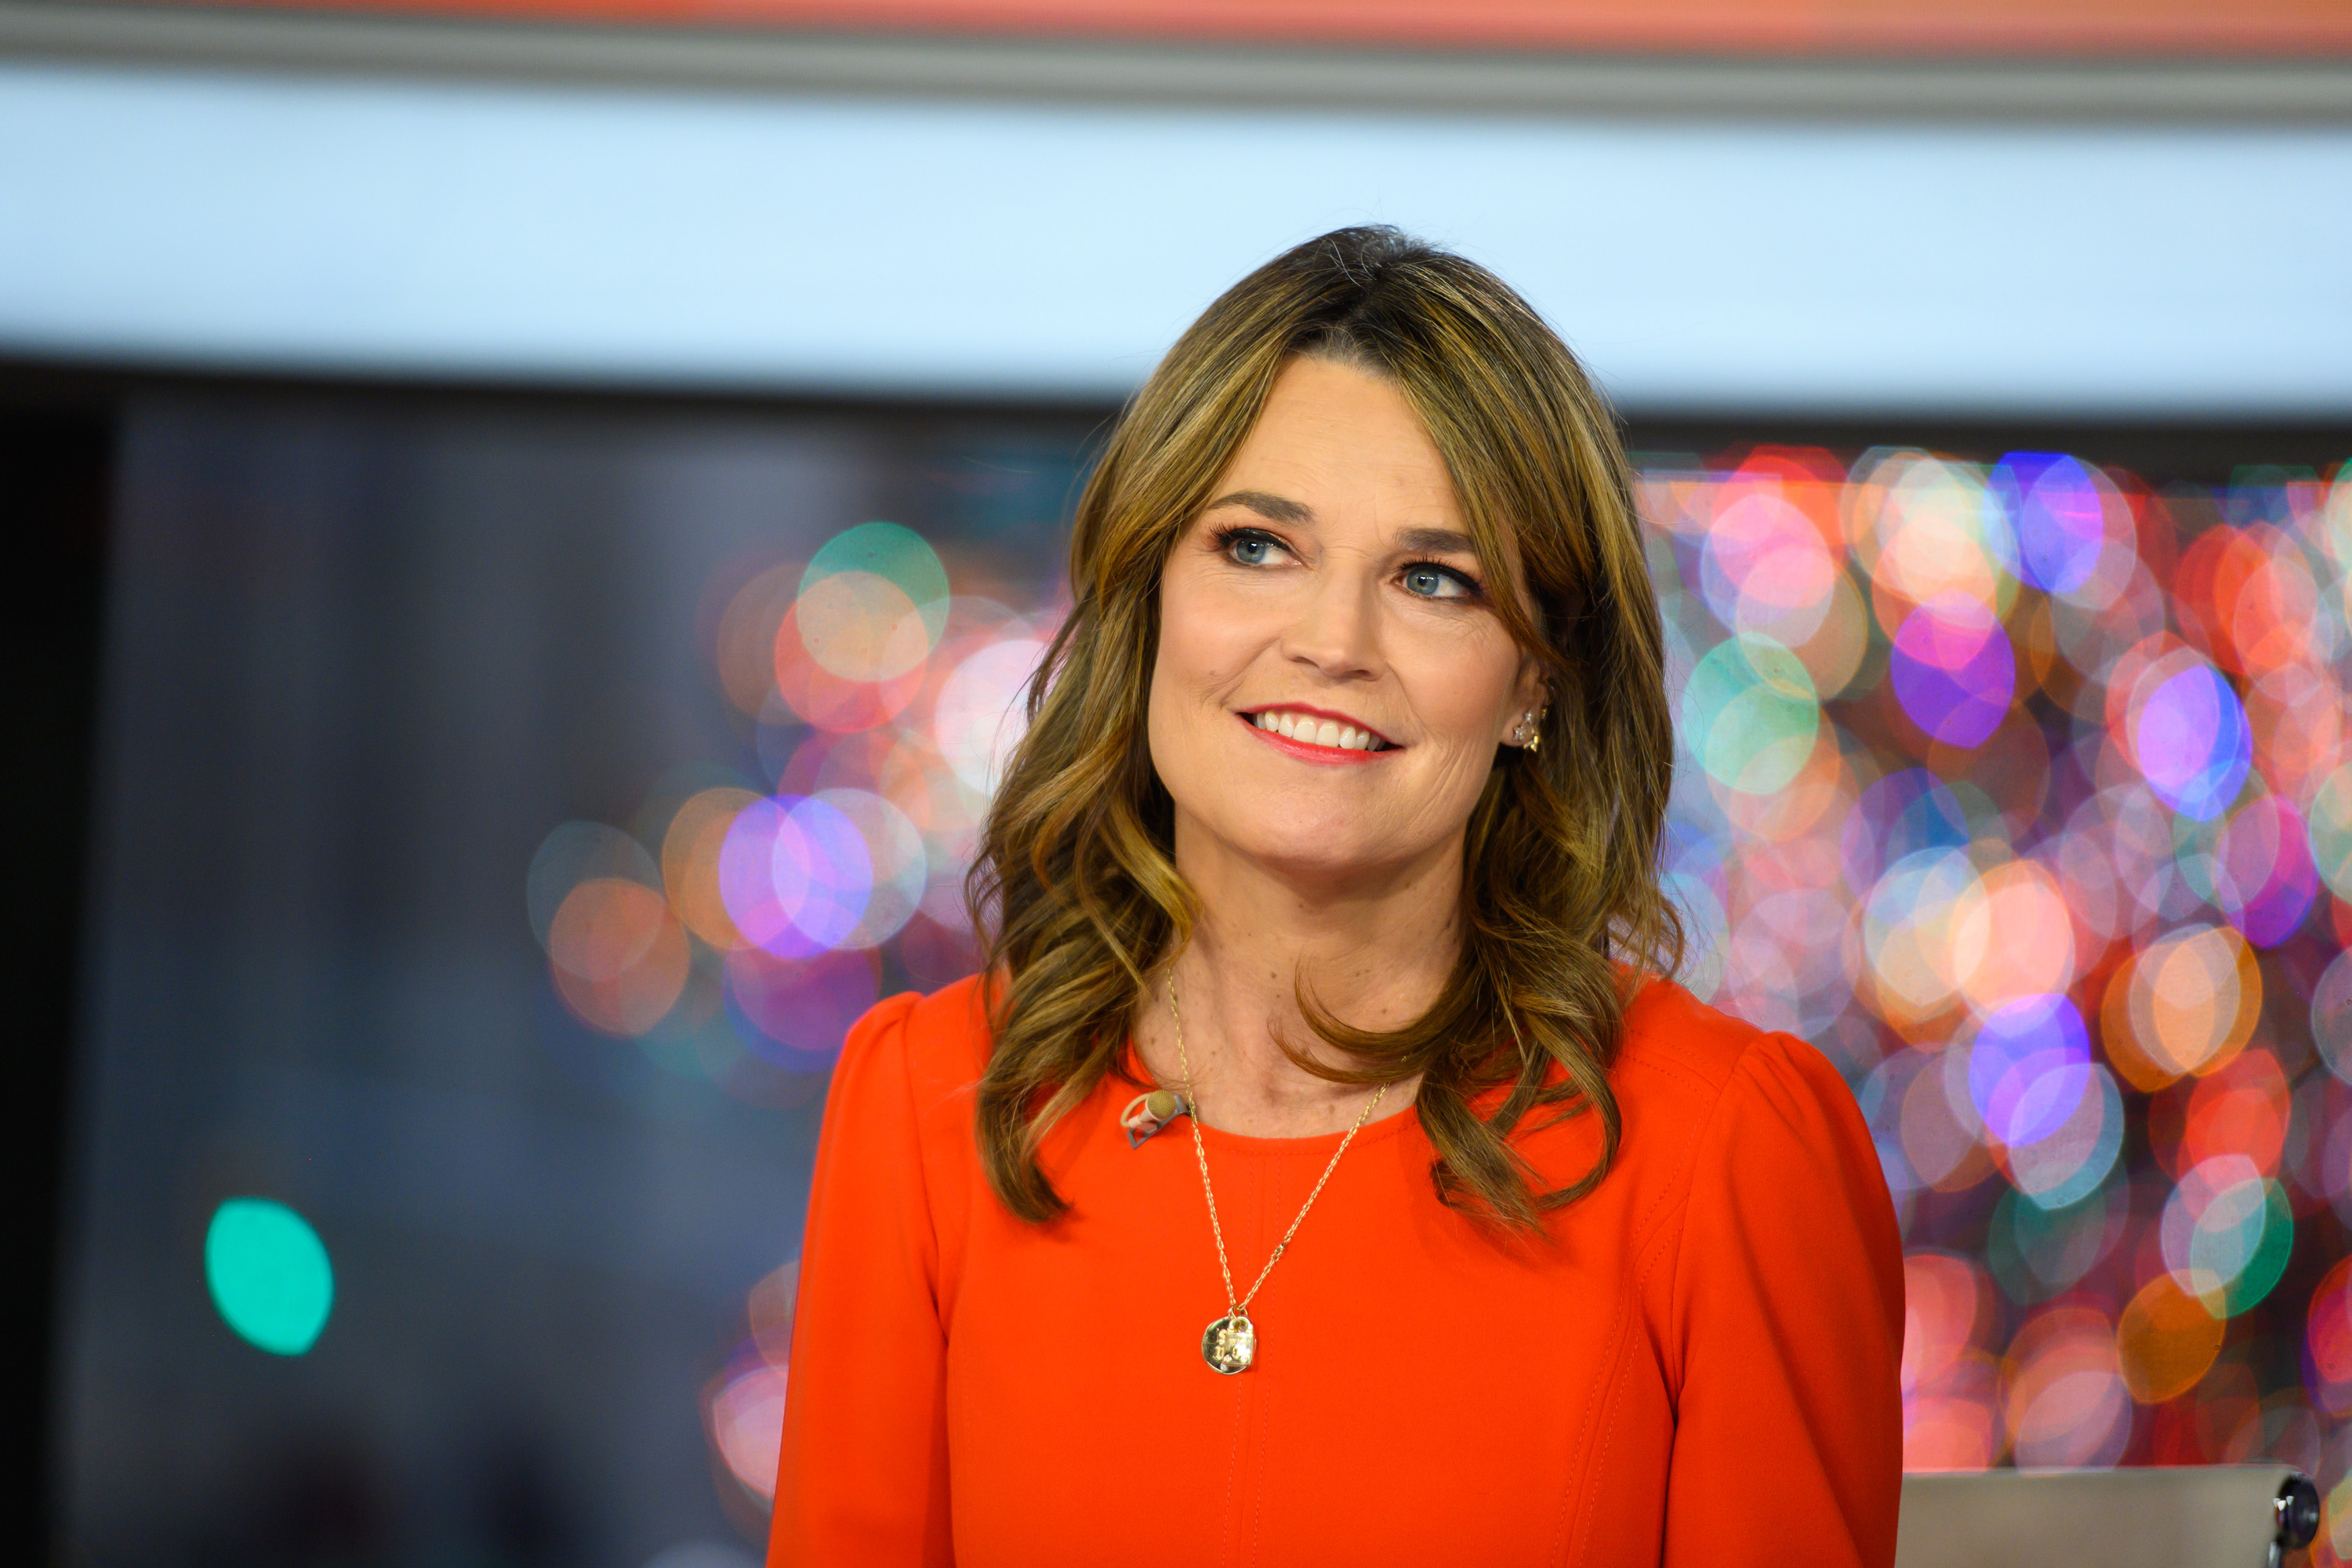 Today Savannah Guthrie S Hair Is Mocked On Instagram But She Takes The High Road Yes It Shows